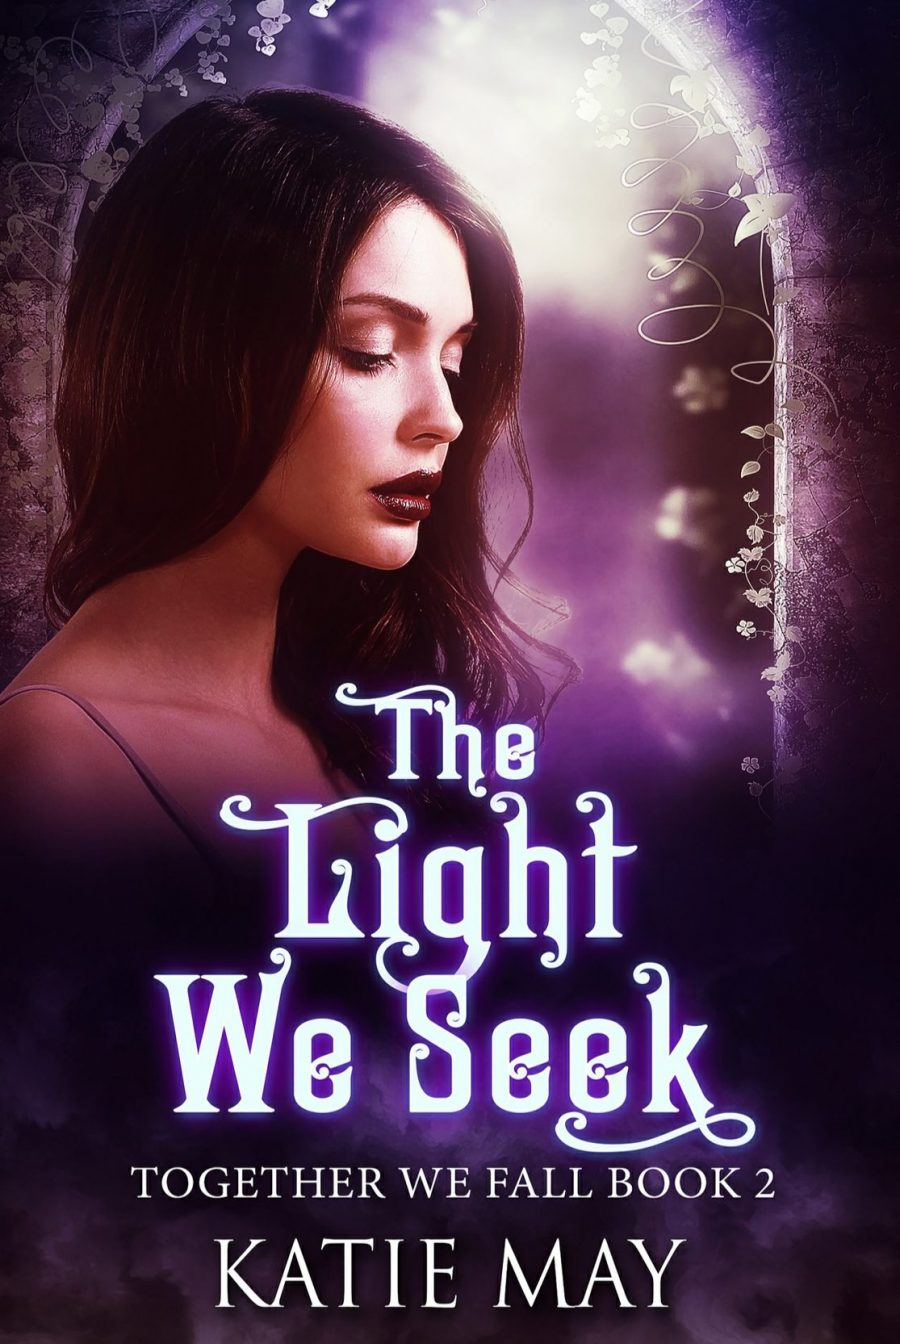 The Light We Seek by Katie May - A Book Review #BookReview #WhyChoose #Dark #dystopian #YA/NA #4.5Stars #mysterious